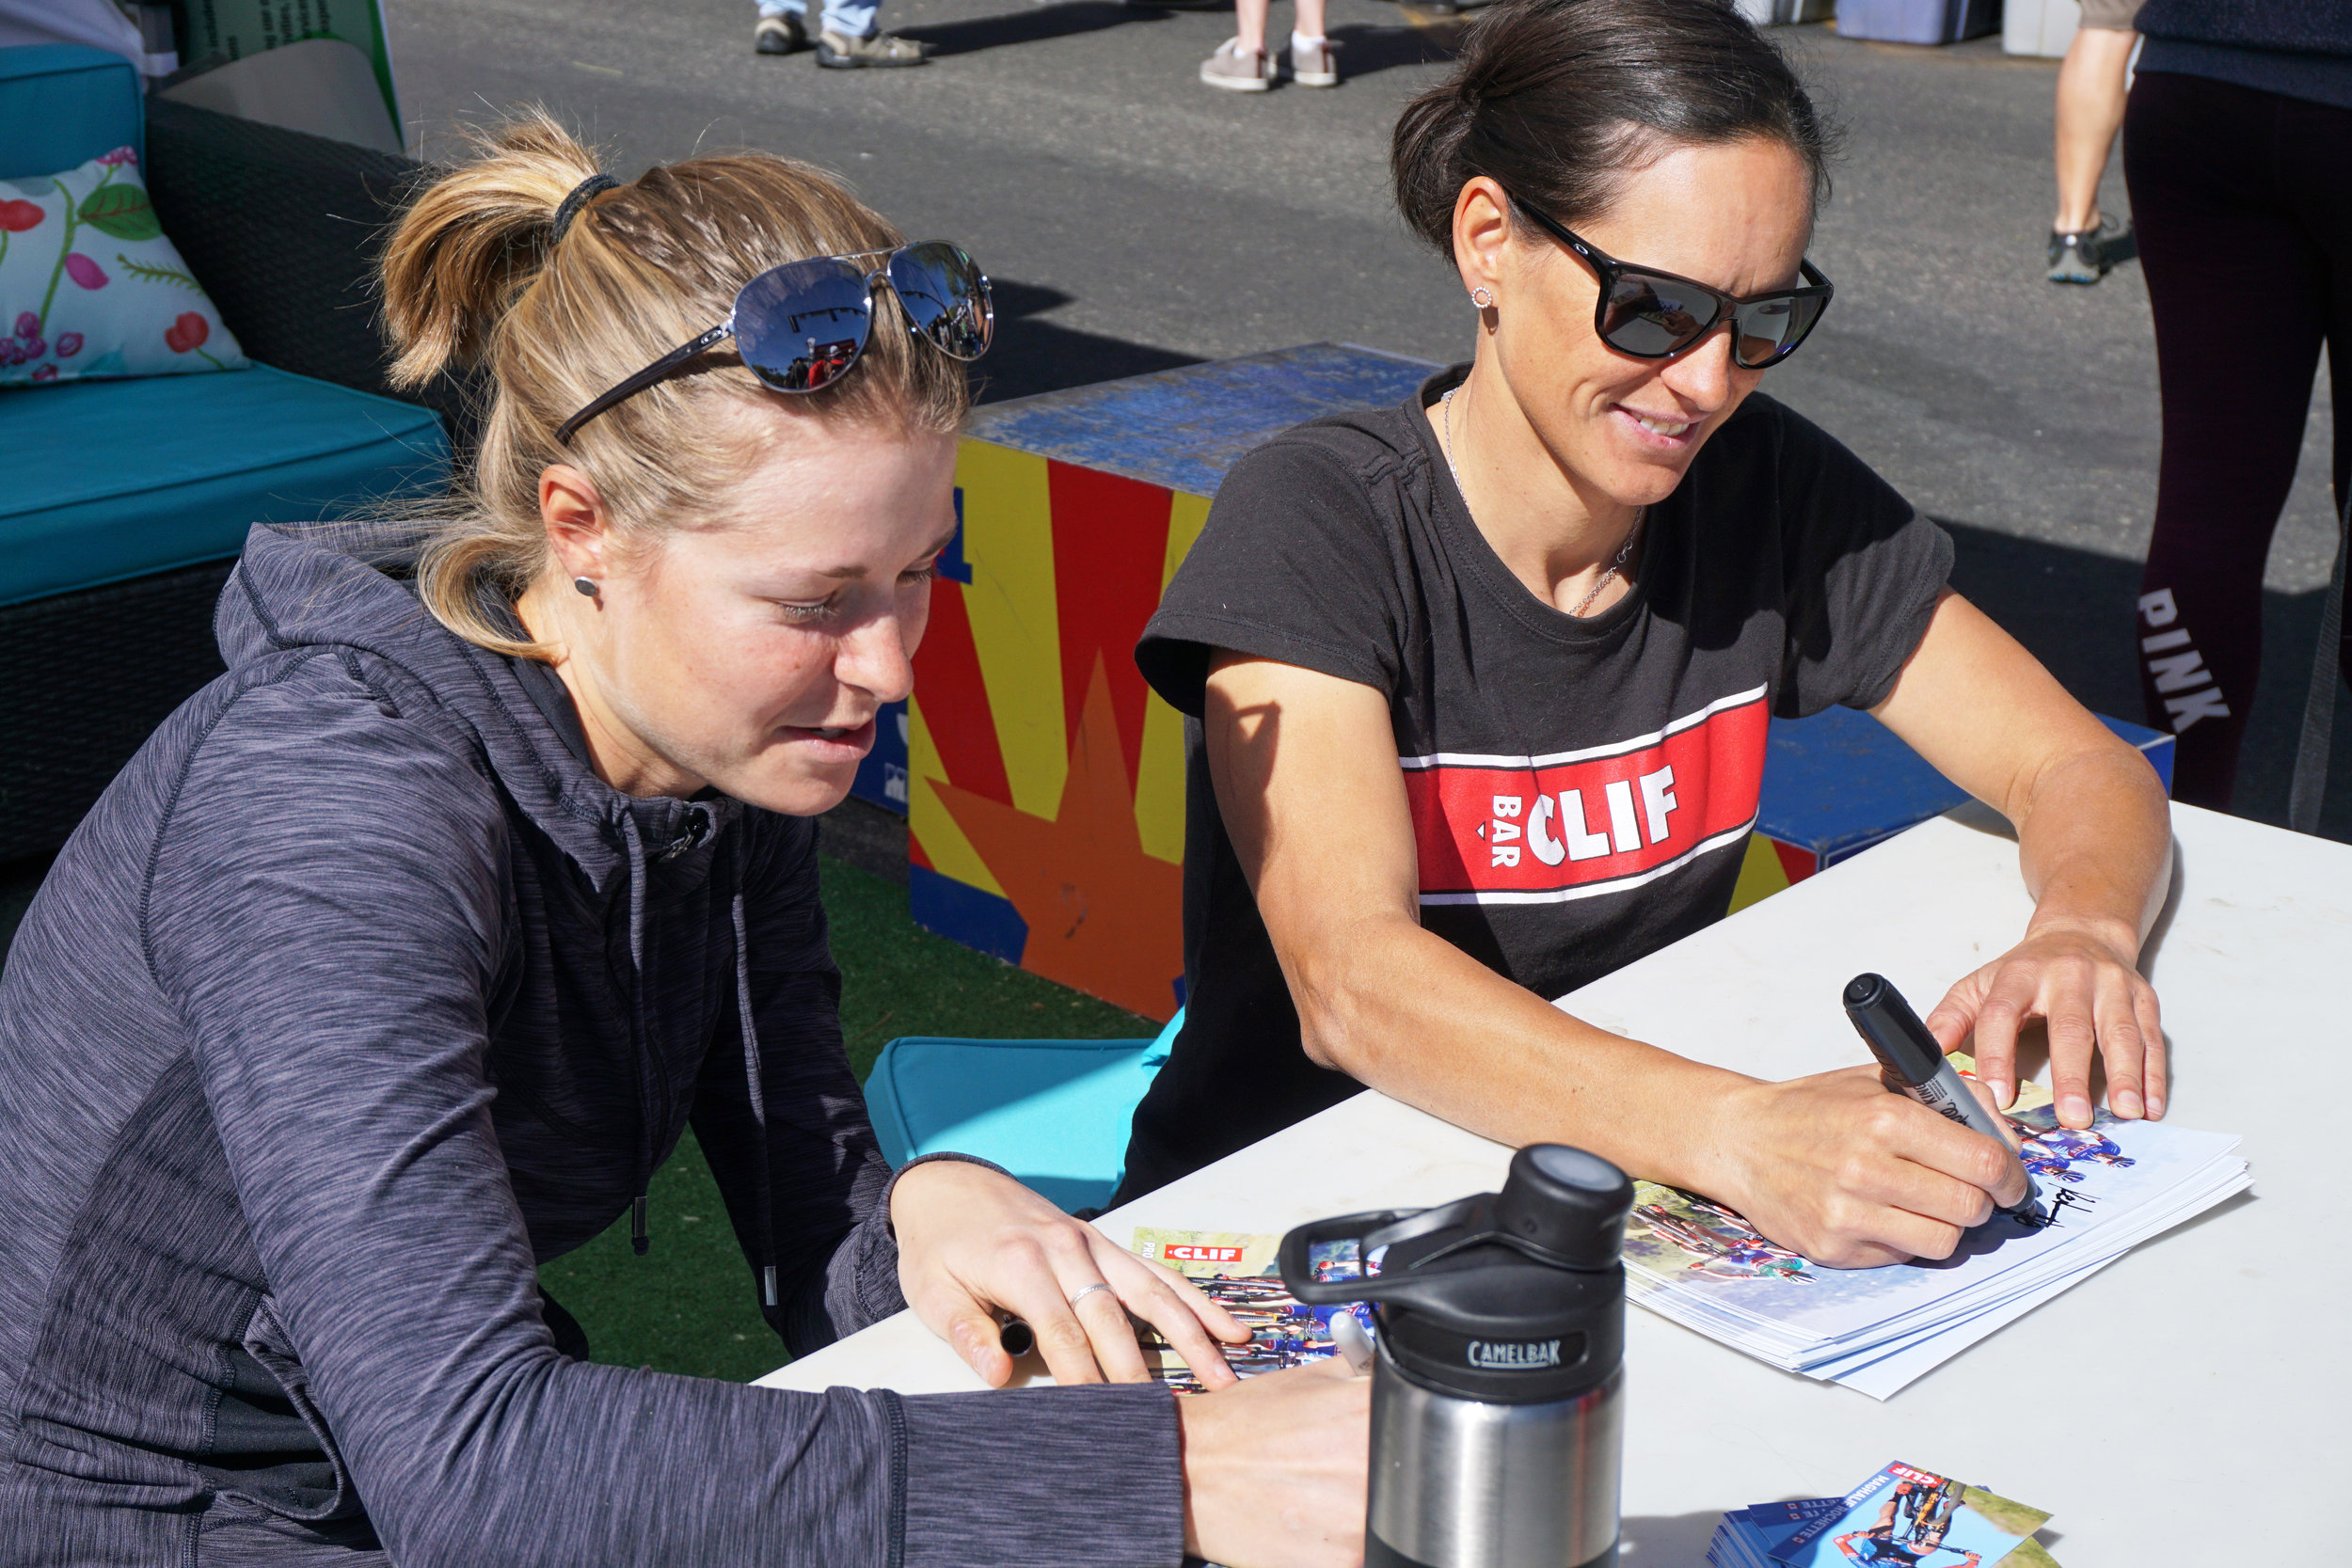 On Friday afternoon before the crit, Katerina and I got to hang out at the Soul Ride tent to sign autograph and meet cool people who were going to race the Whiskey on Saturday.